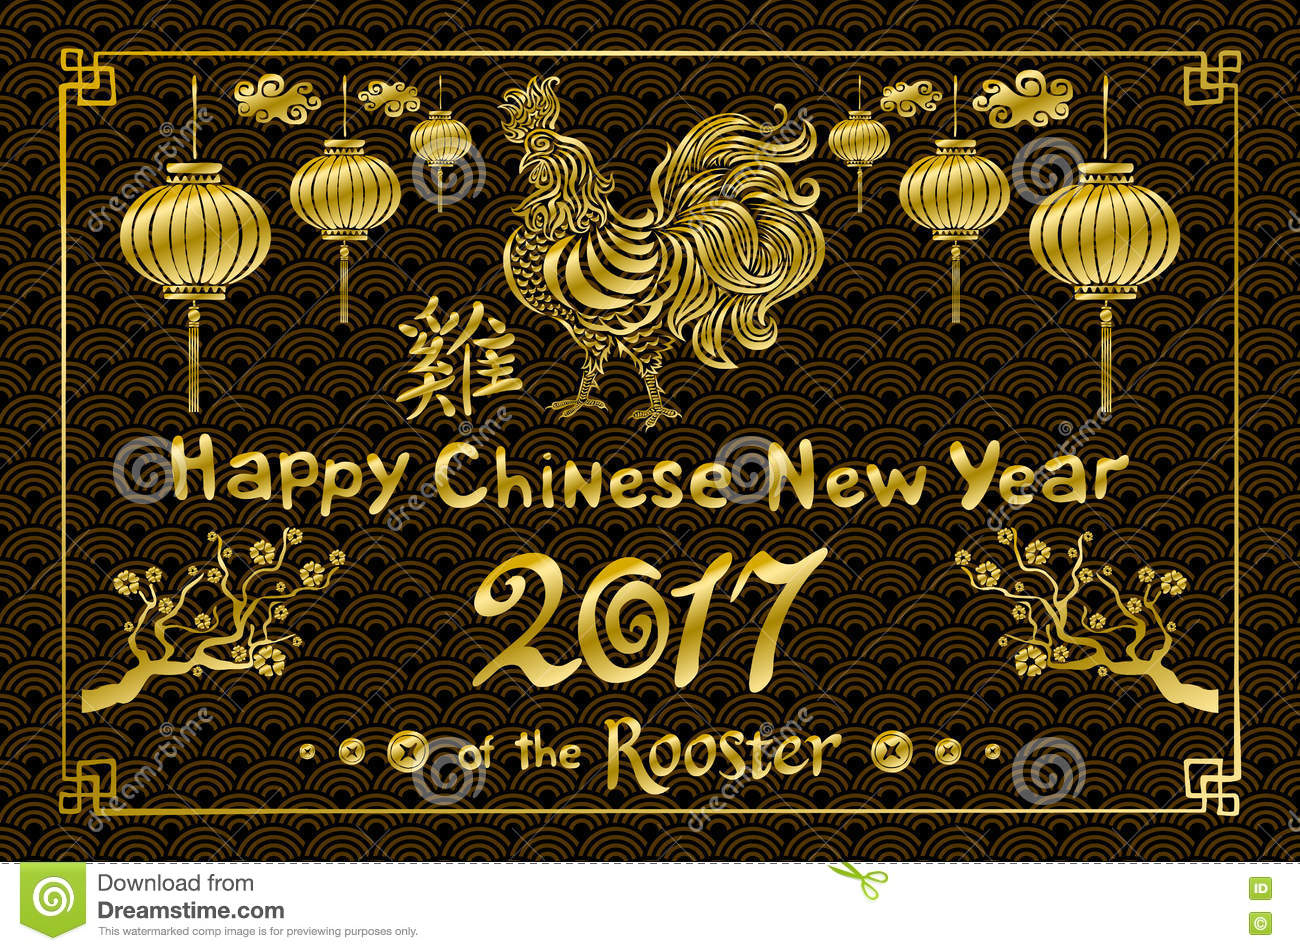 2017 new year with chinese symbol of rooster year of rooster 2017 new year with chinese symbol of rooster year of rooster golden rooster on dragon fish scales background buycottarizona Gallery